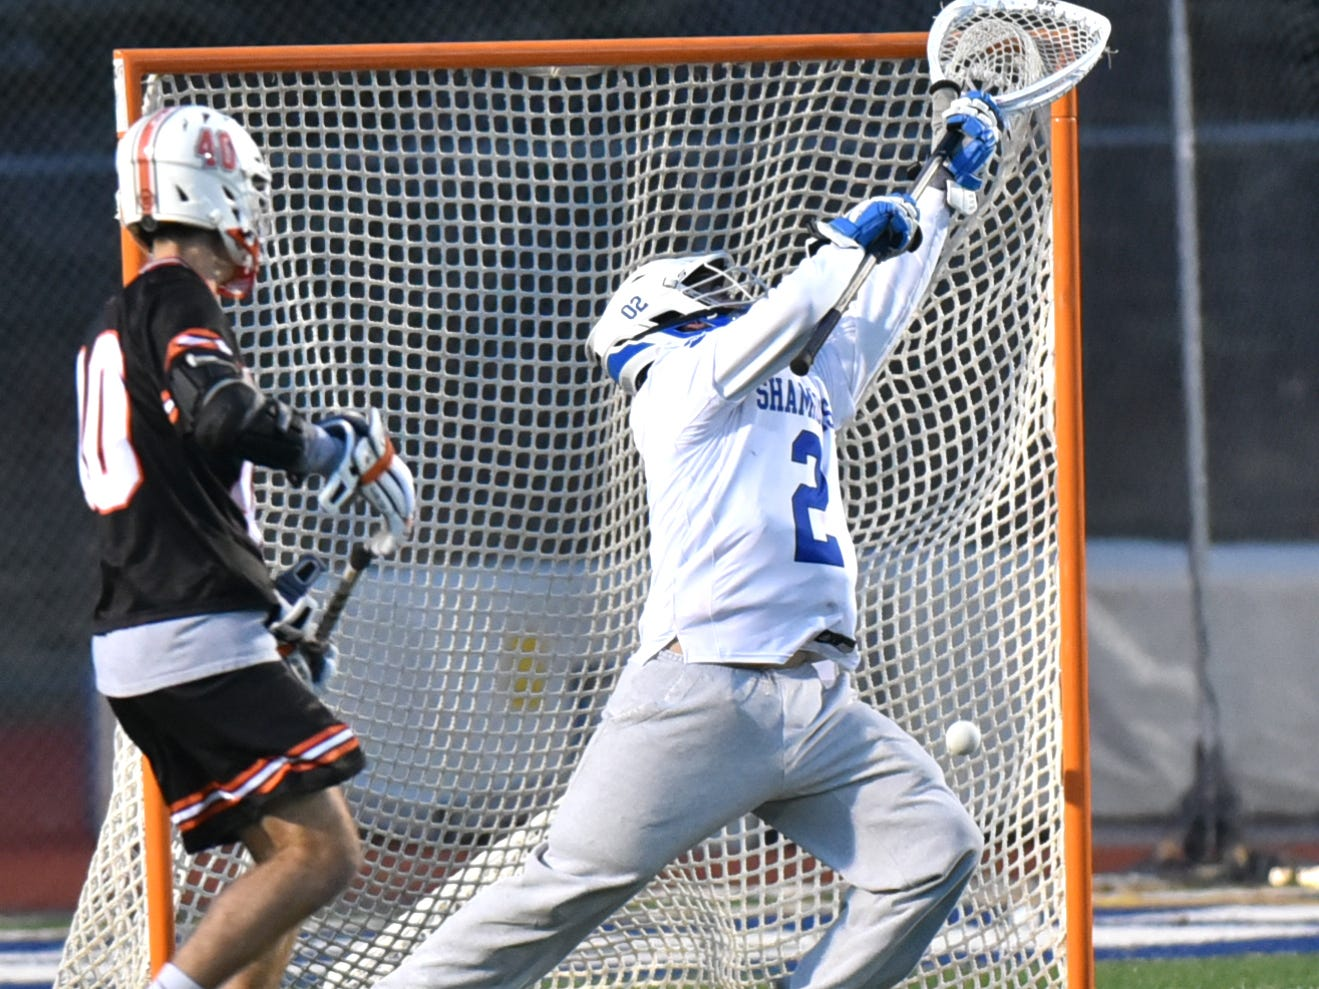 Detroit Catholic Central goalie Johnny Shea, right, misses at the save attempt on a shot by Brother Rice's Jordan Hyde.